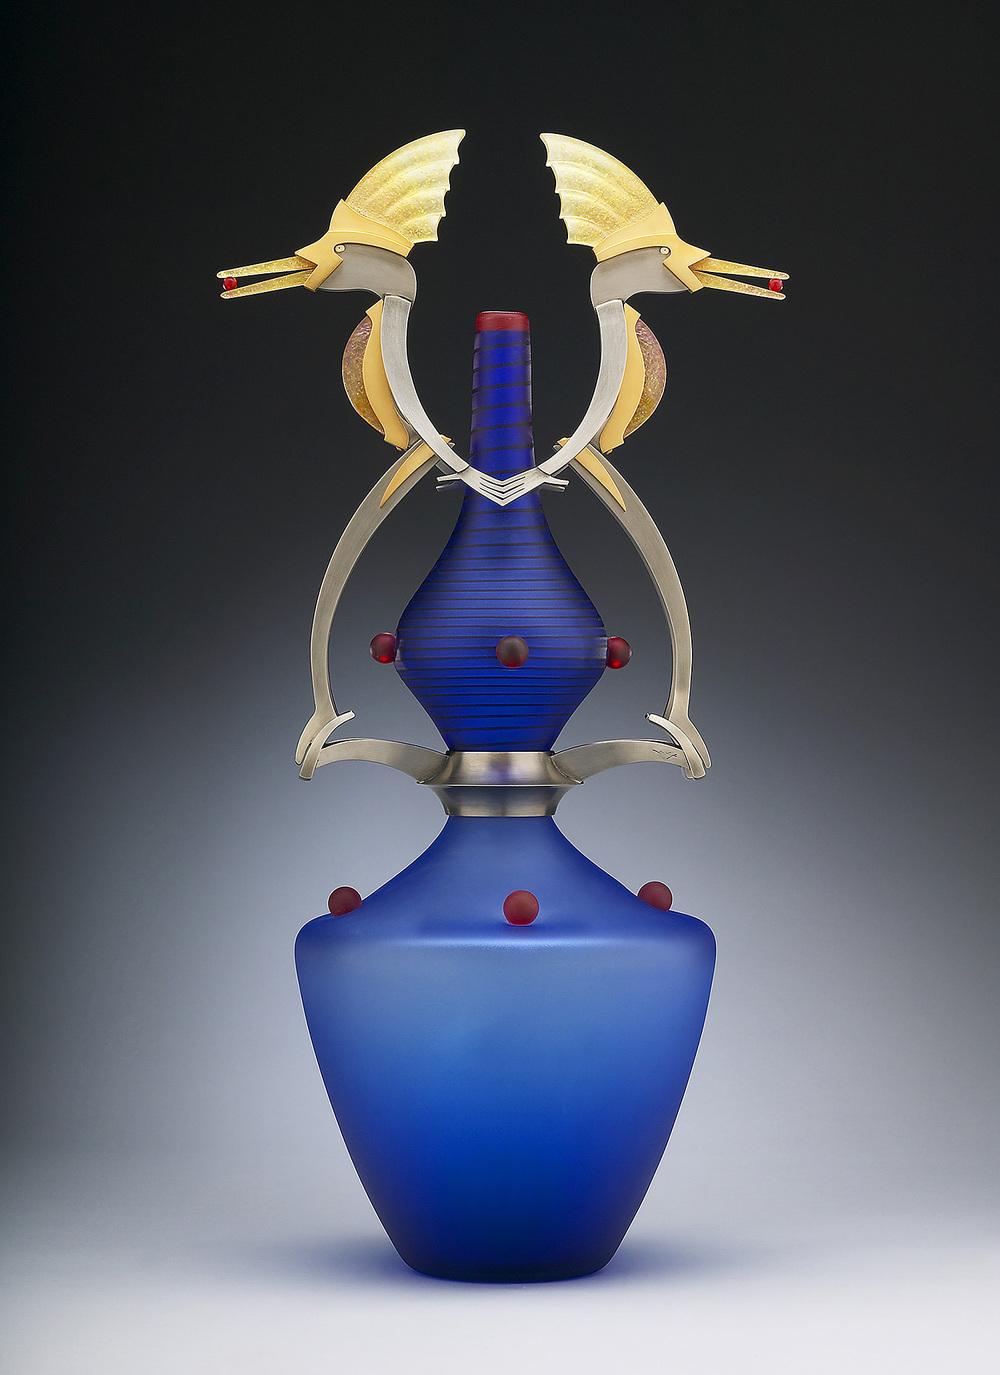 Pride   2005. Blown glass, nickel and gold-plated bronze, pate de verre, Vitrolite. 22 x 11 x 8""